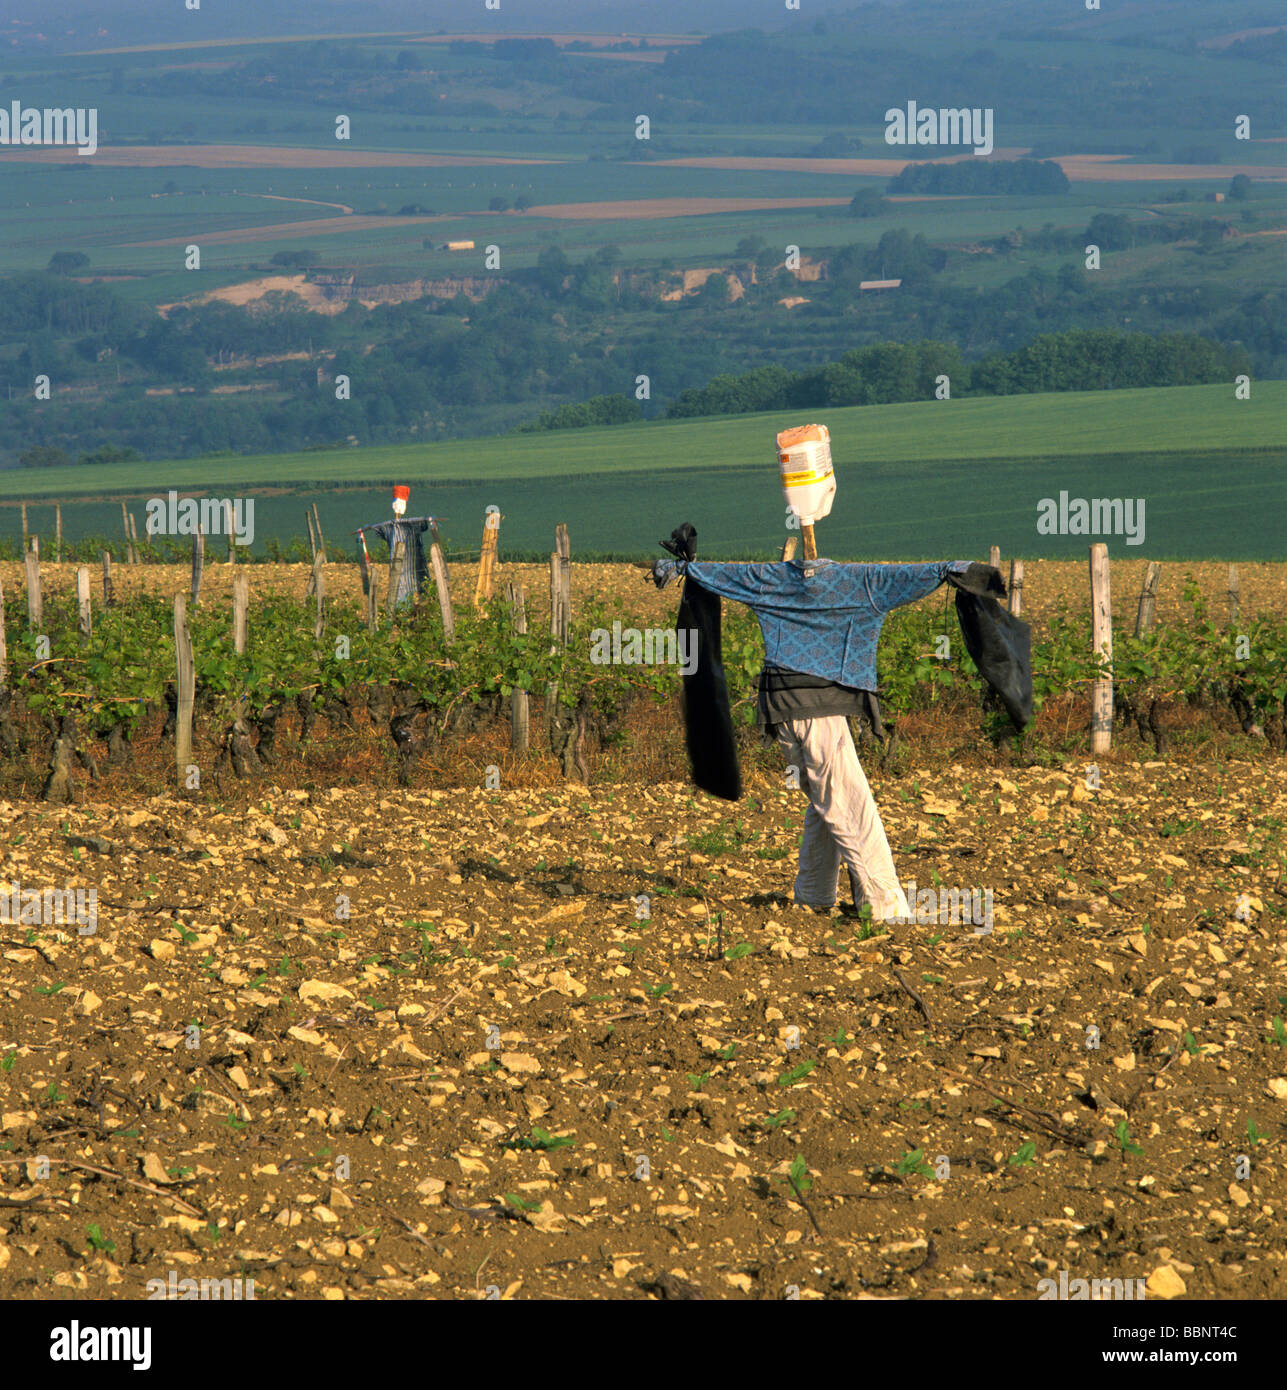 Scarecrow in the middle of a field - Stock Image